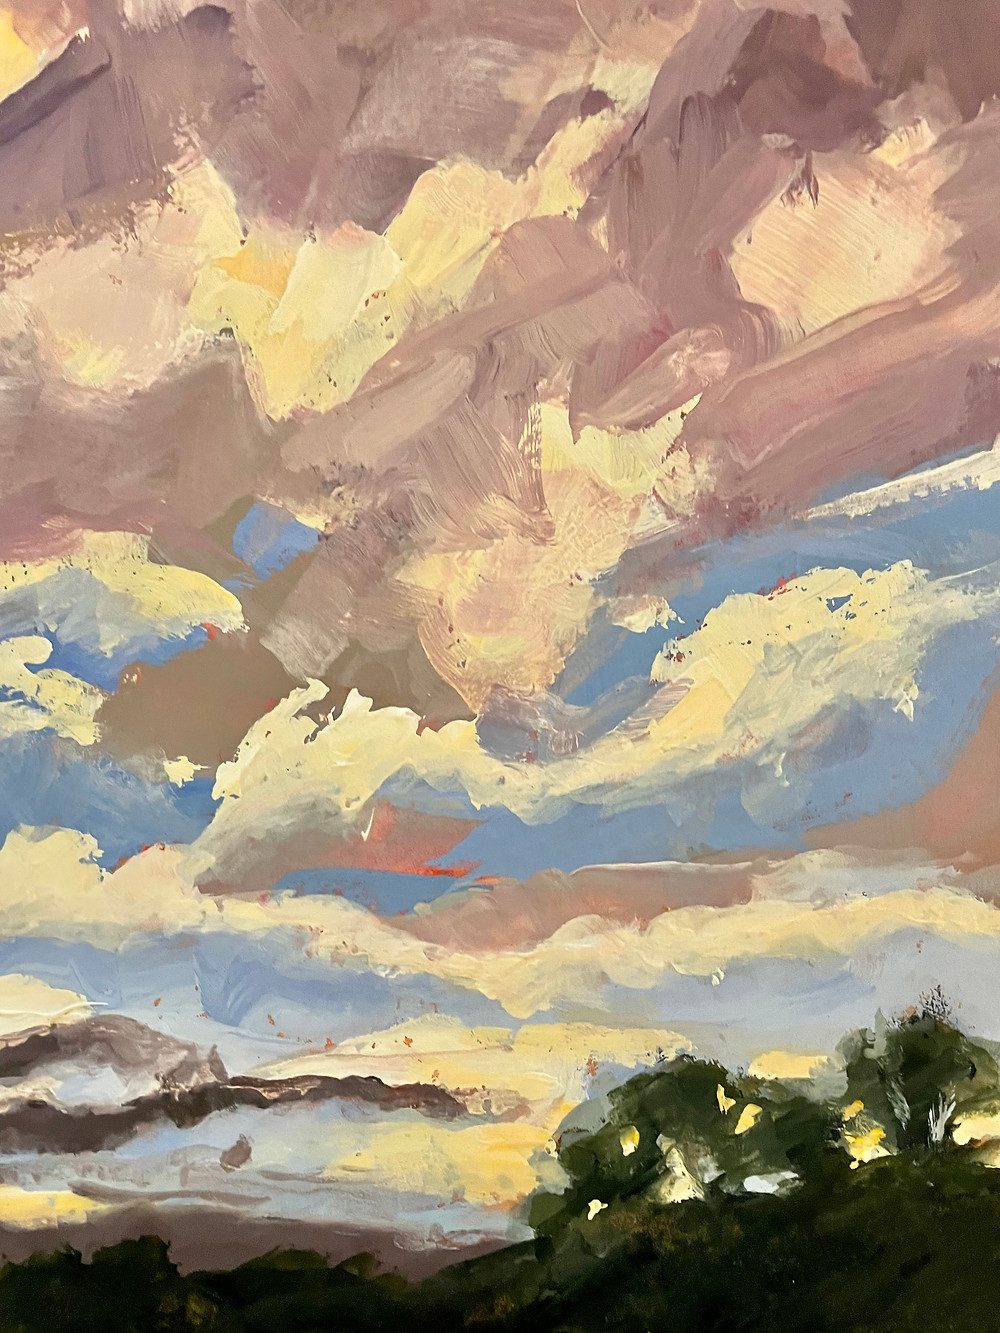 Cloud filled sky at sunset gouache painting. Landscape painting